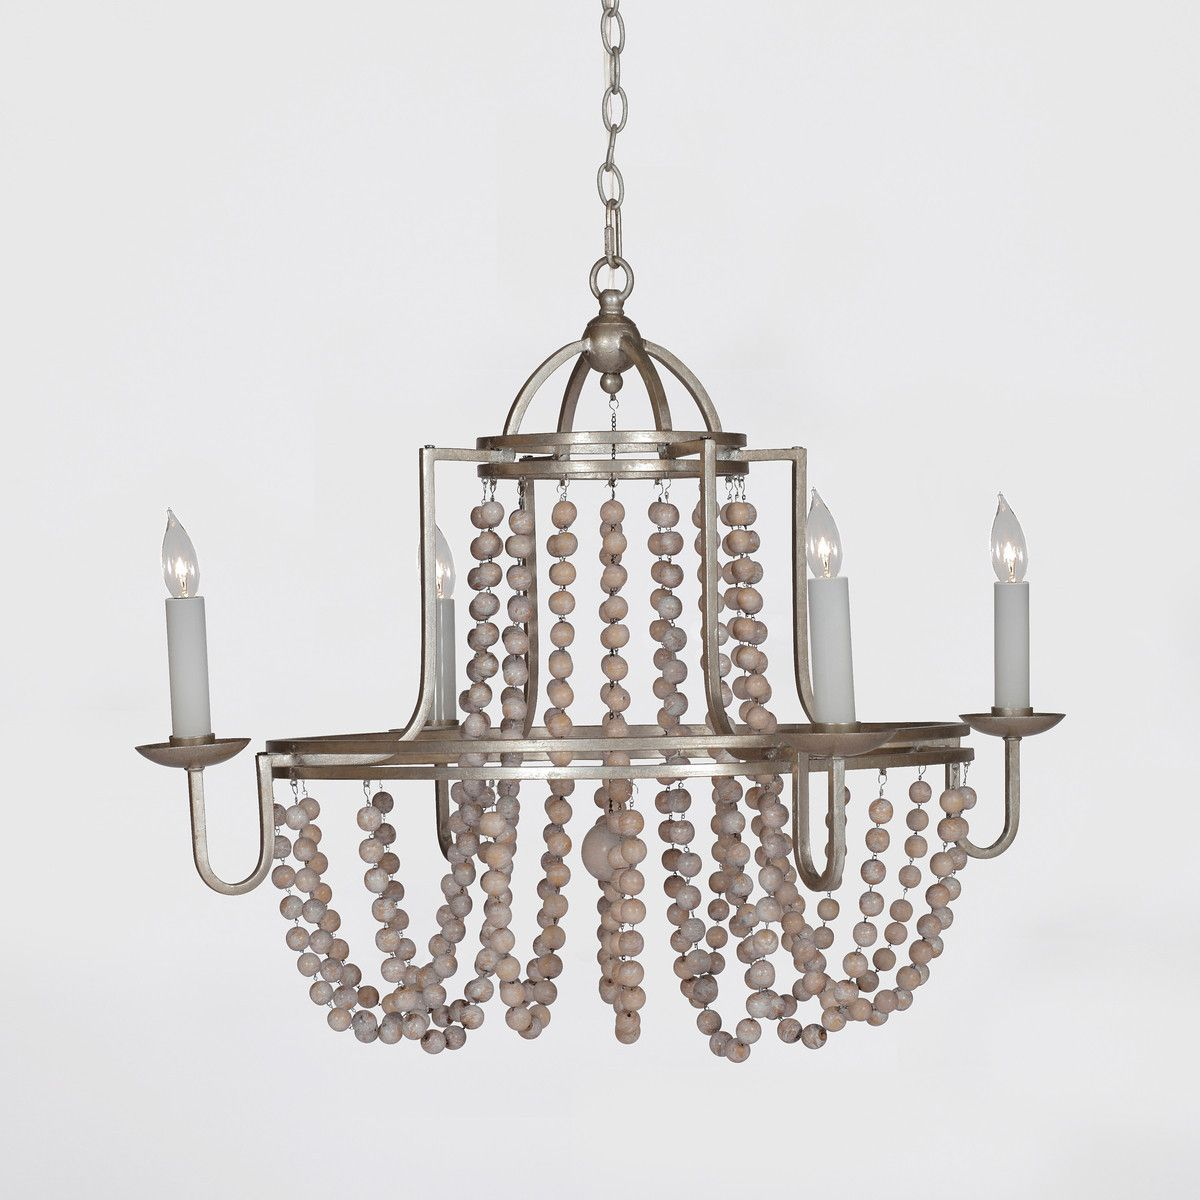 Plum Goose On Twitter The Stunning Instapretty Gabby Sonya Chandelier For Your Home Today Make Guests Say Wow When They Come Over